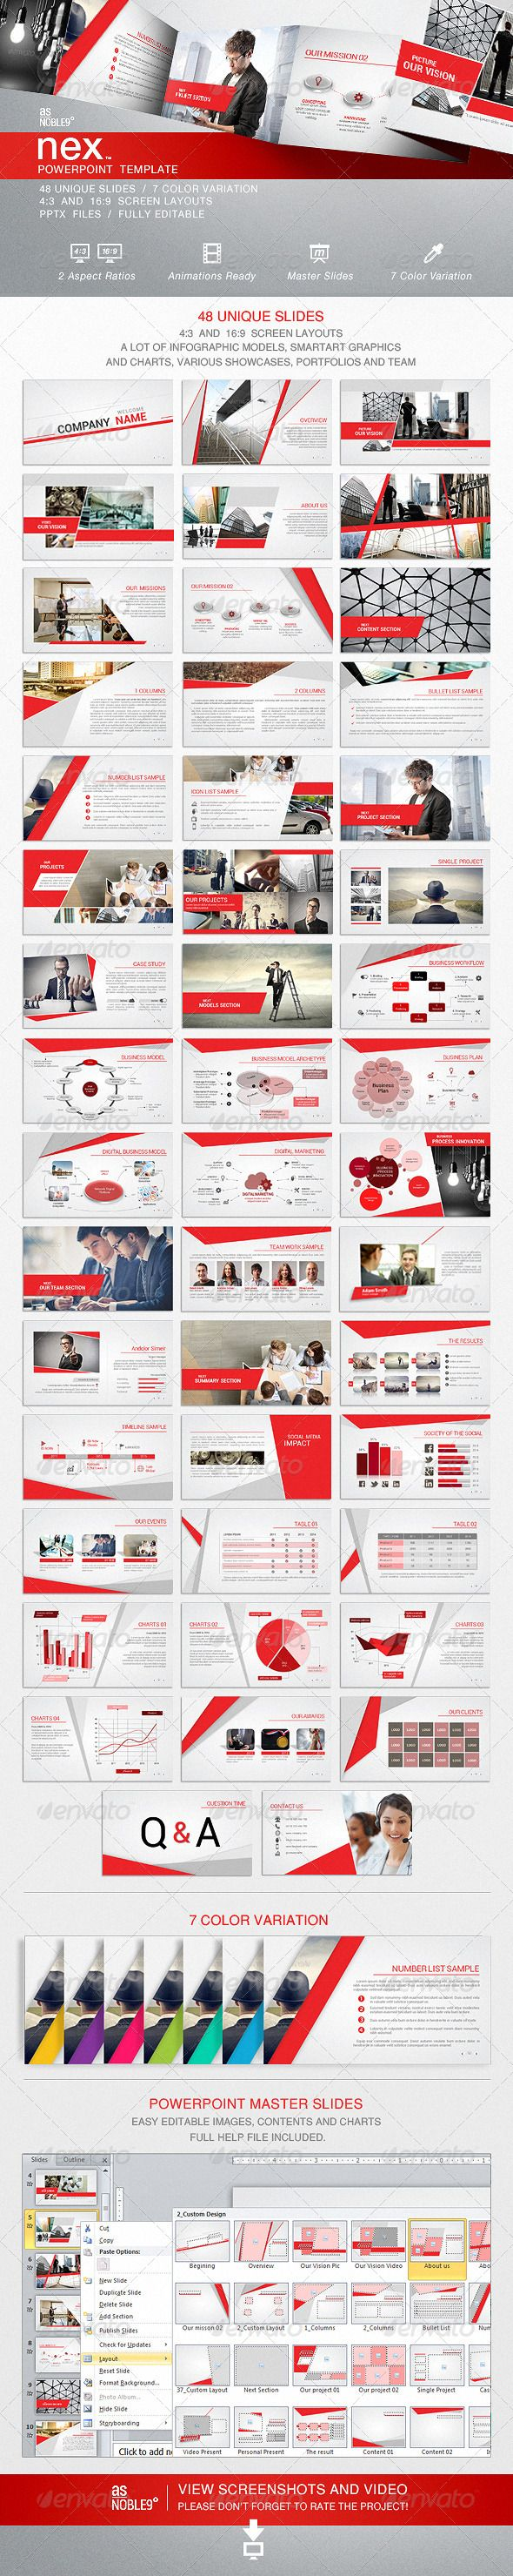 Presentation design layout. Inspirational presentation design samples. Visit us…